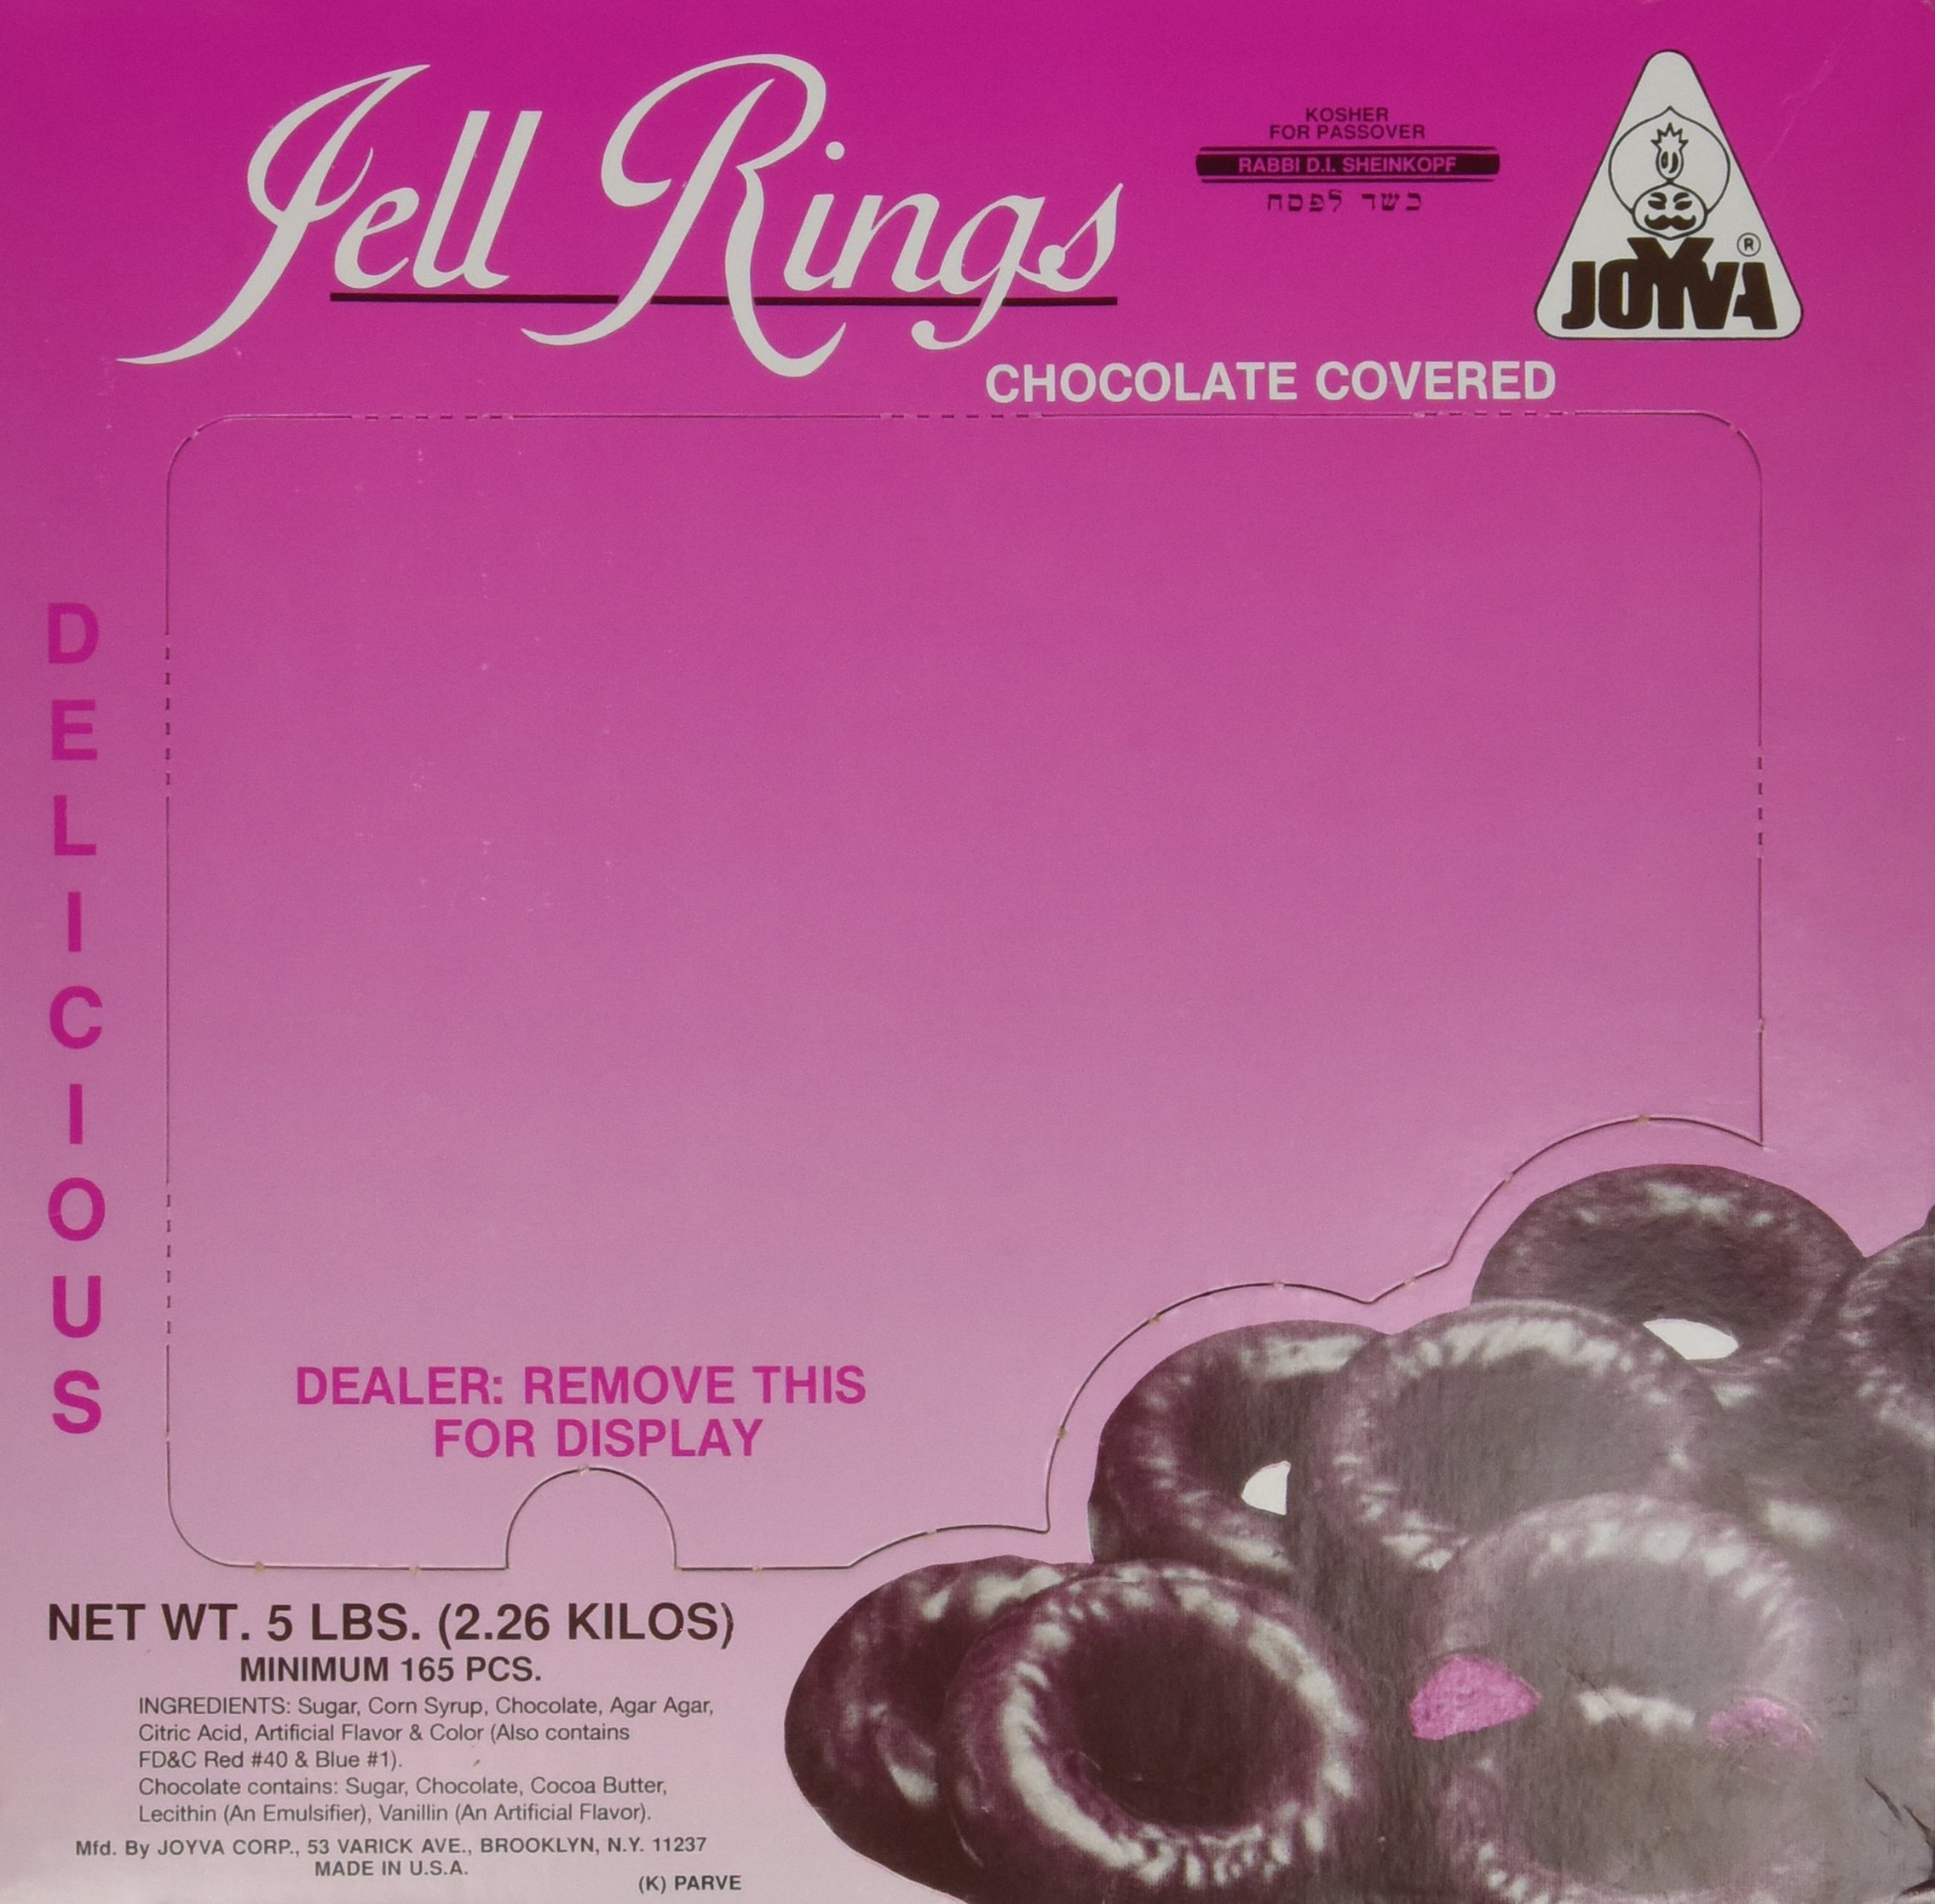 Chocolate Covered Jelly Rings by Joyva 5lbs by Joyva